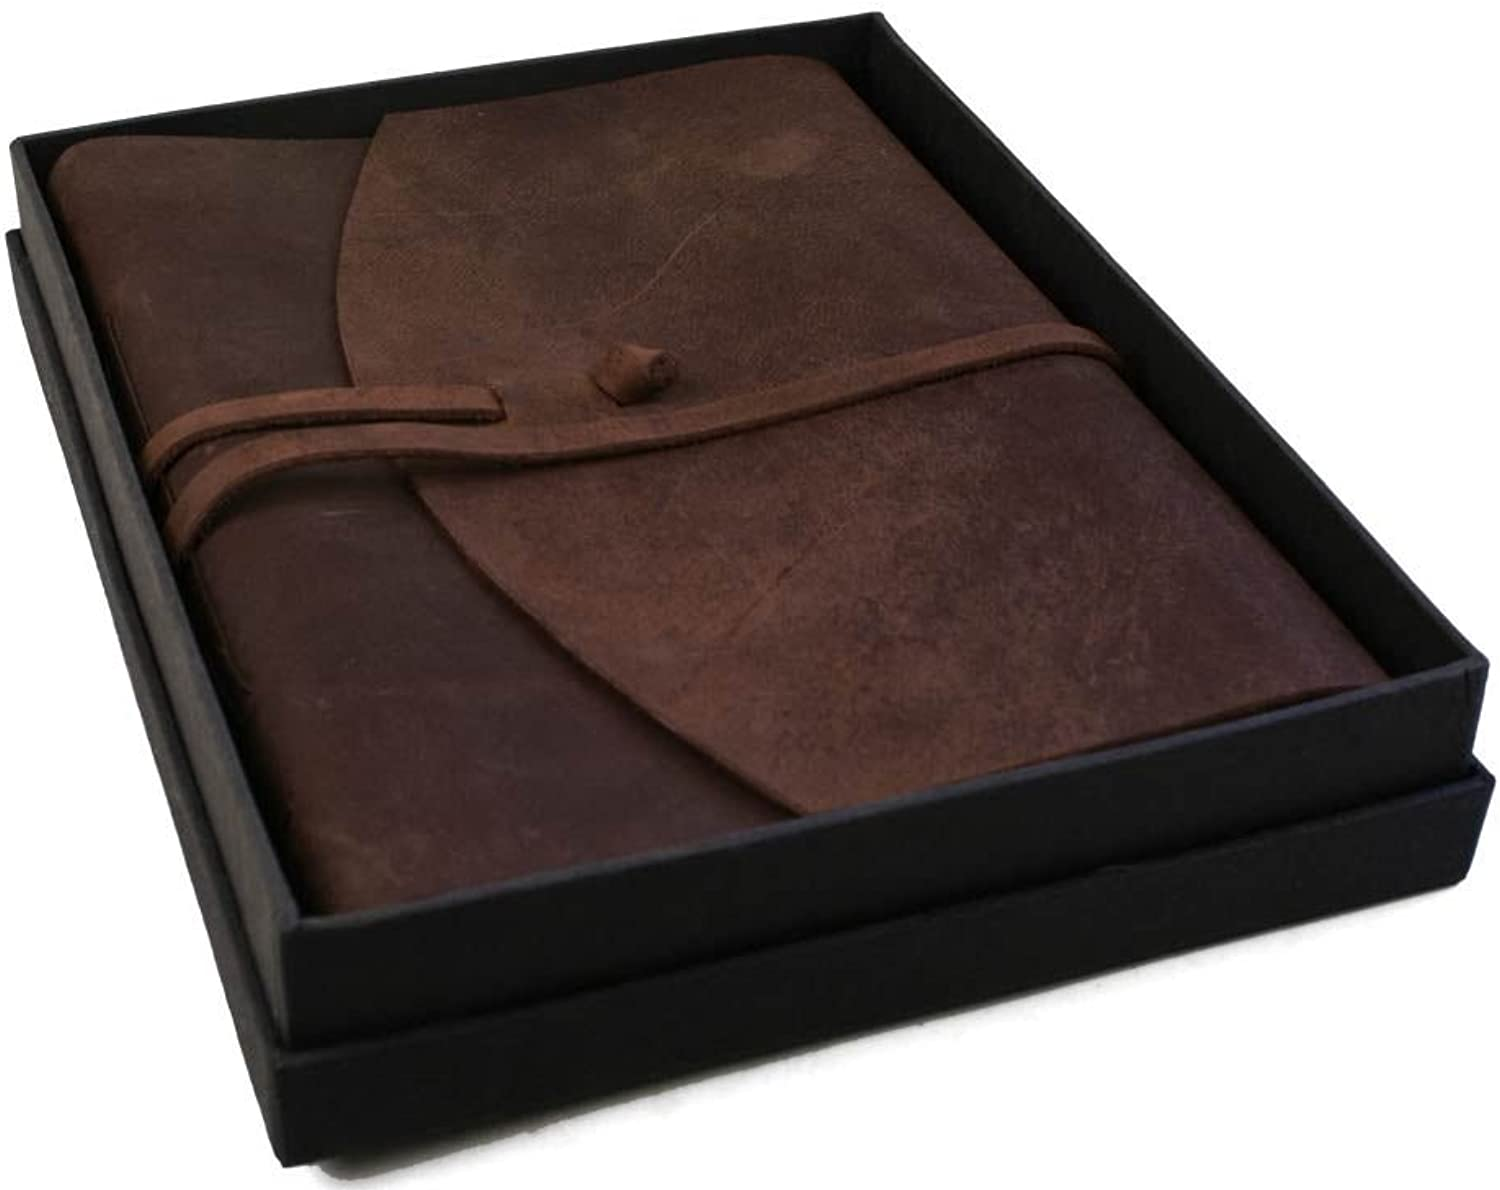 Indiana Leather Refillable Journal Savannah, A4 Plain Pages  Handmade by Life Arts